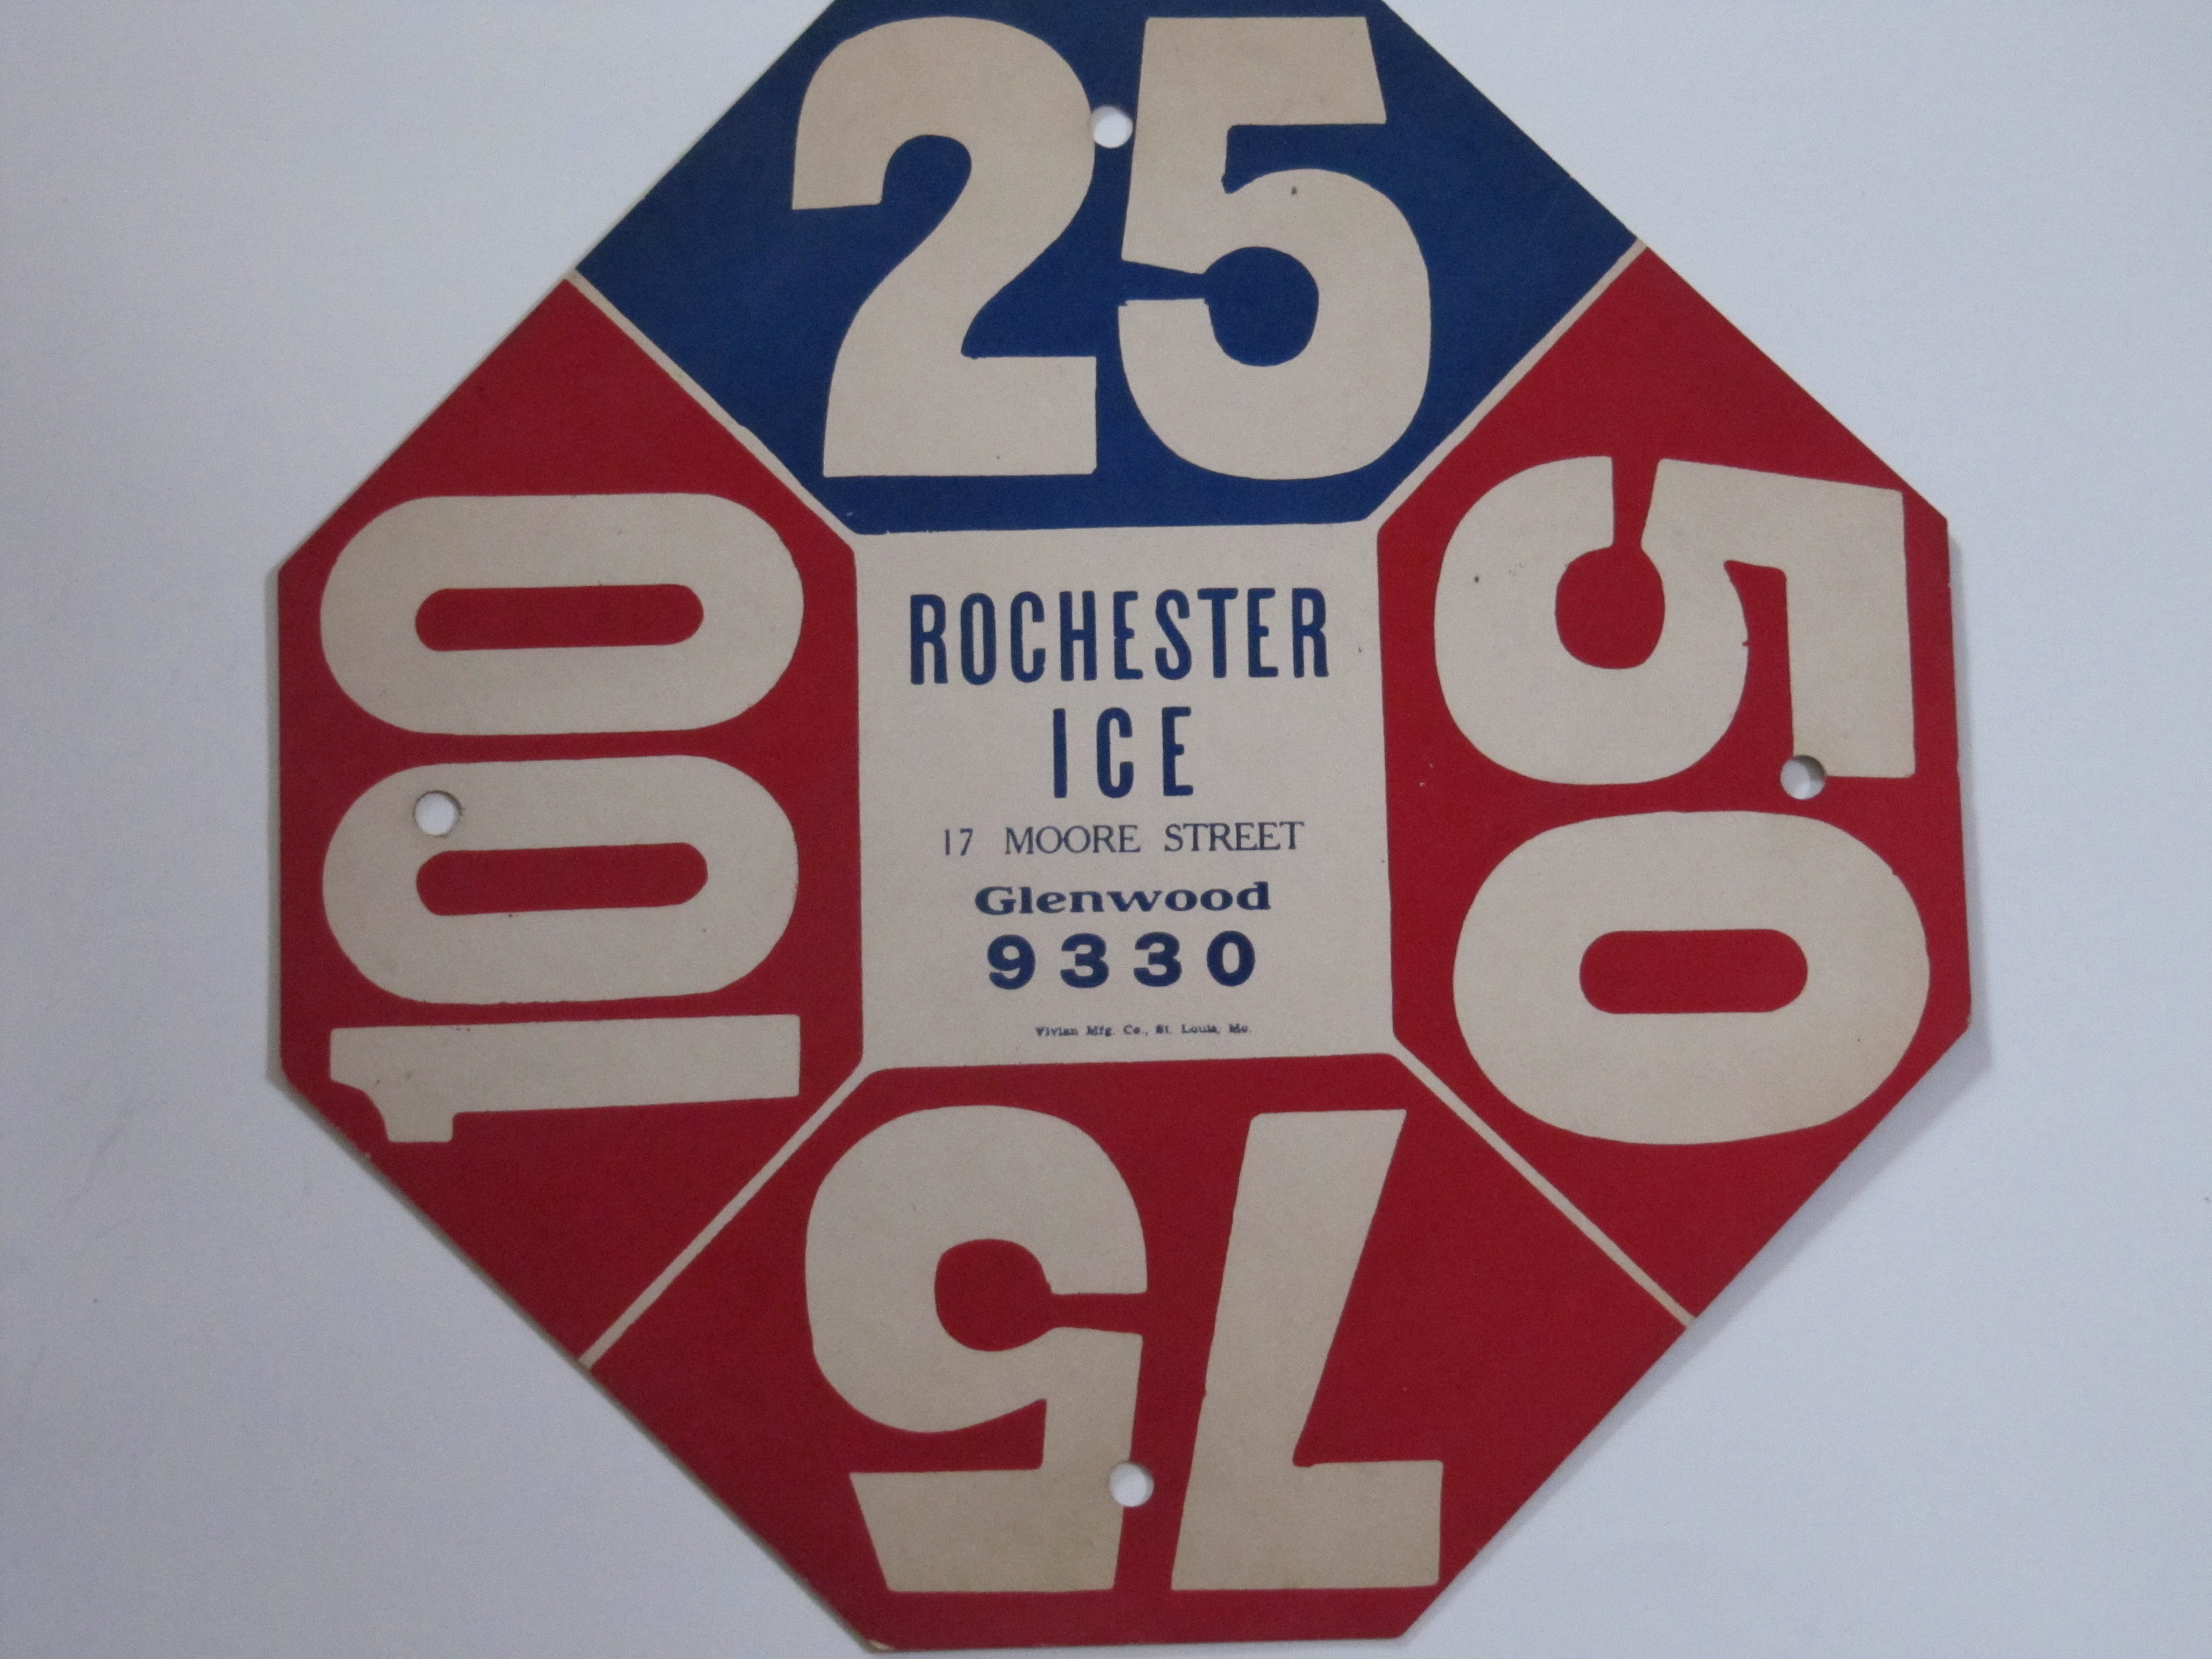 Rochester Ice Co.